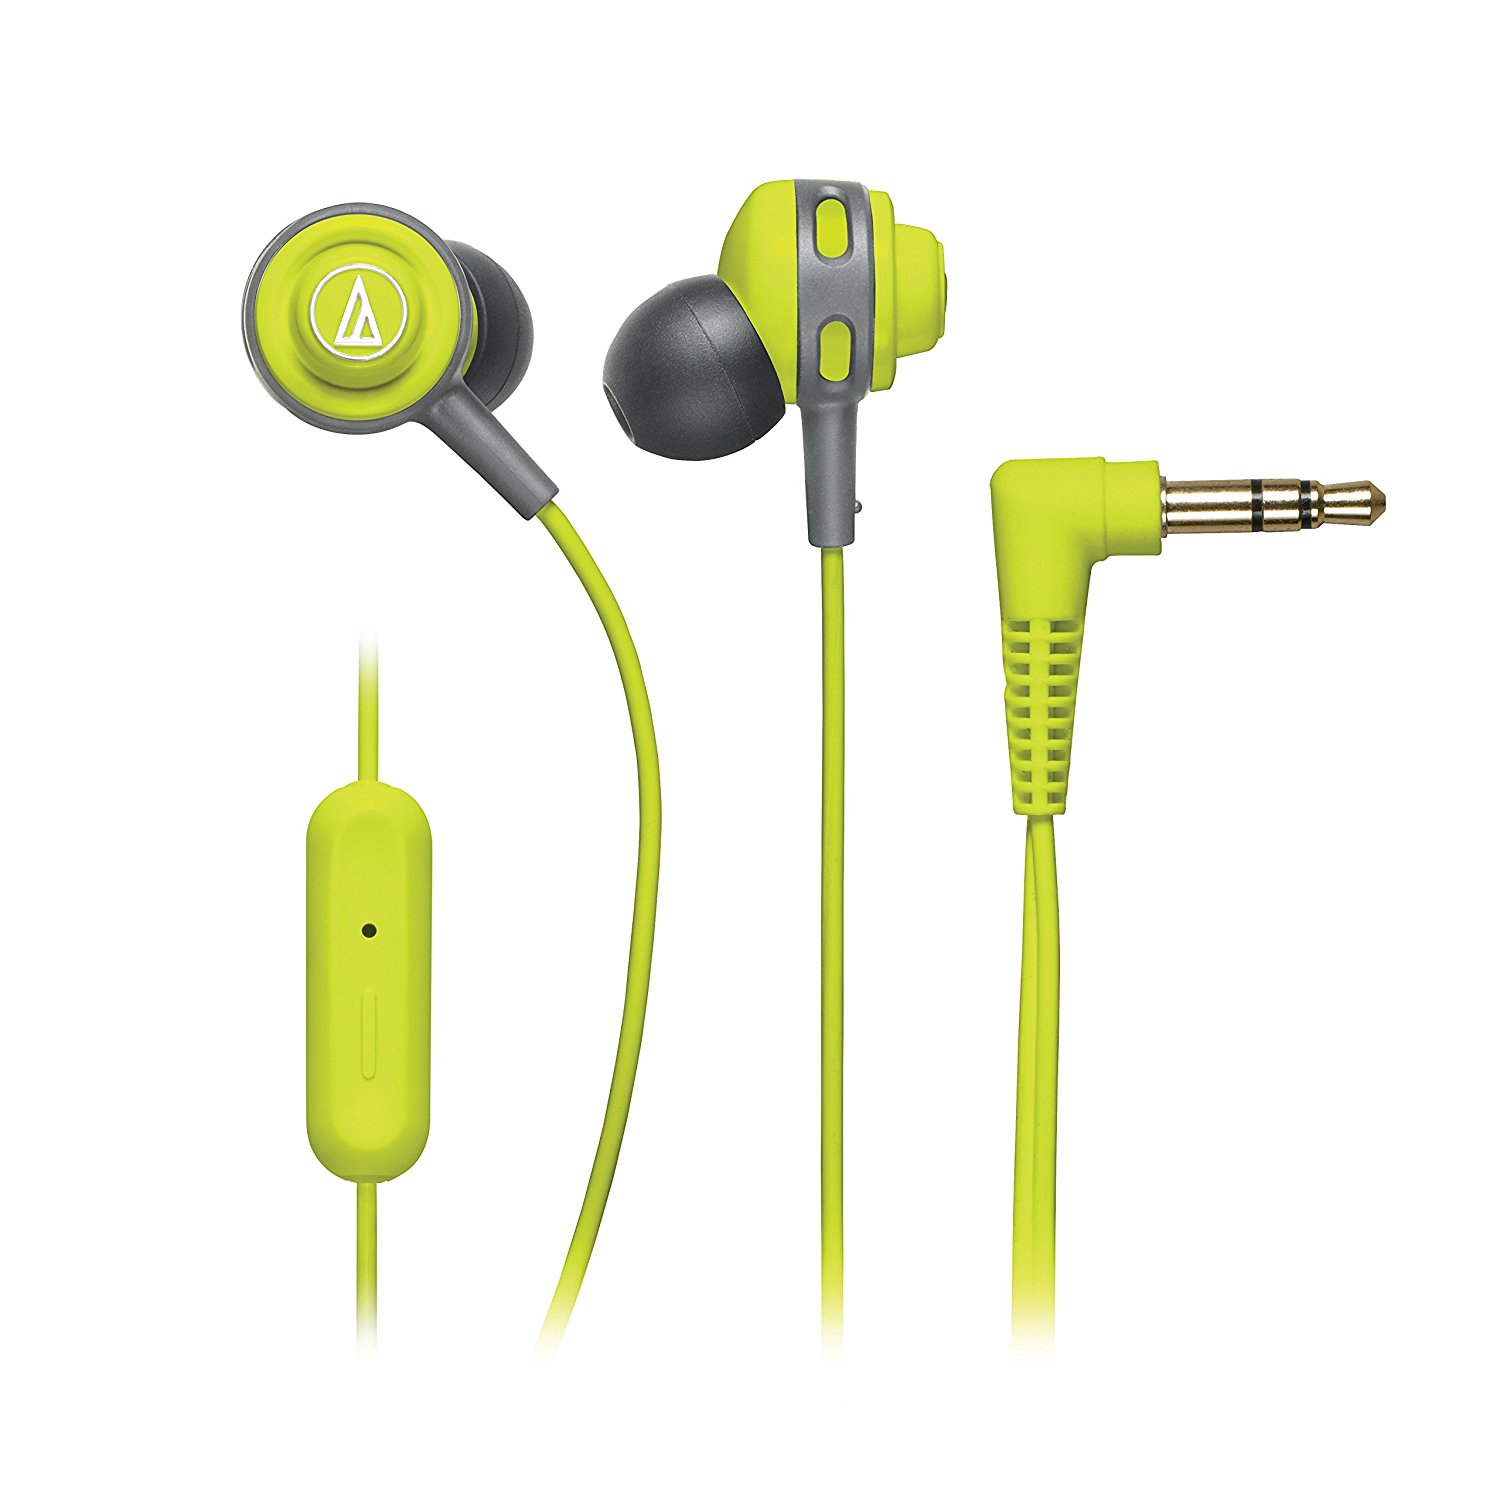 Audio-Technica SonicSport In-ear Headphones with In-line Mic & Control - Stereo - Lime Green - Mini-phone - Wired